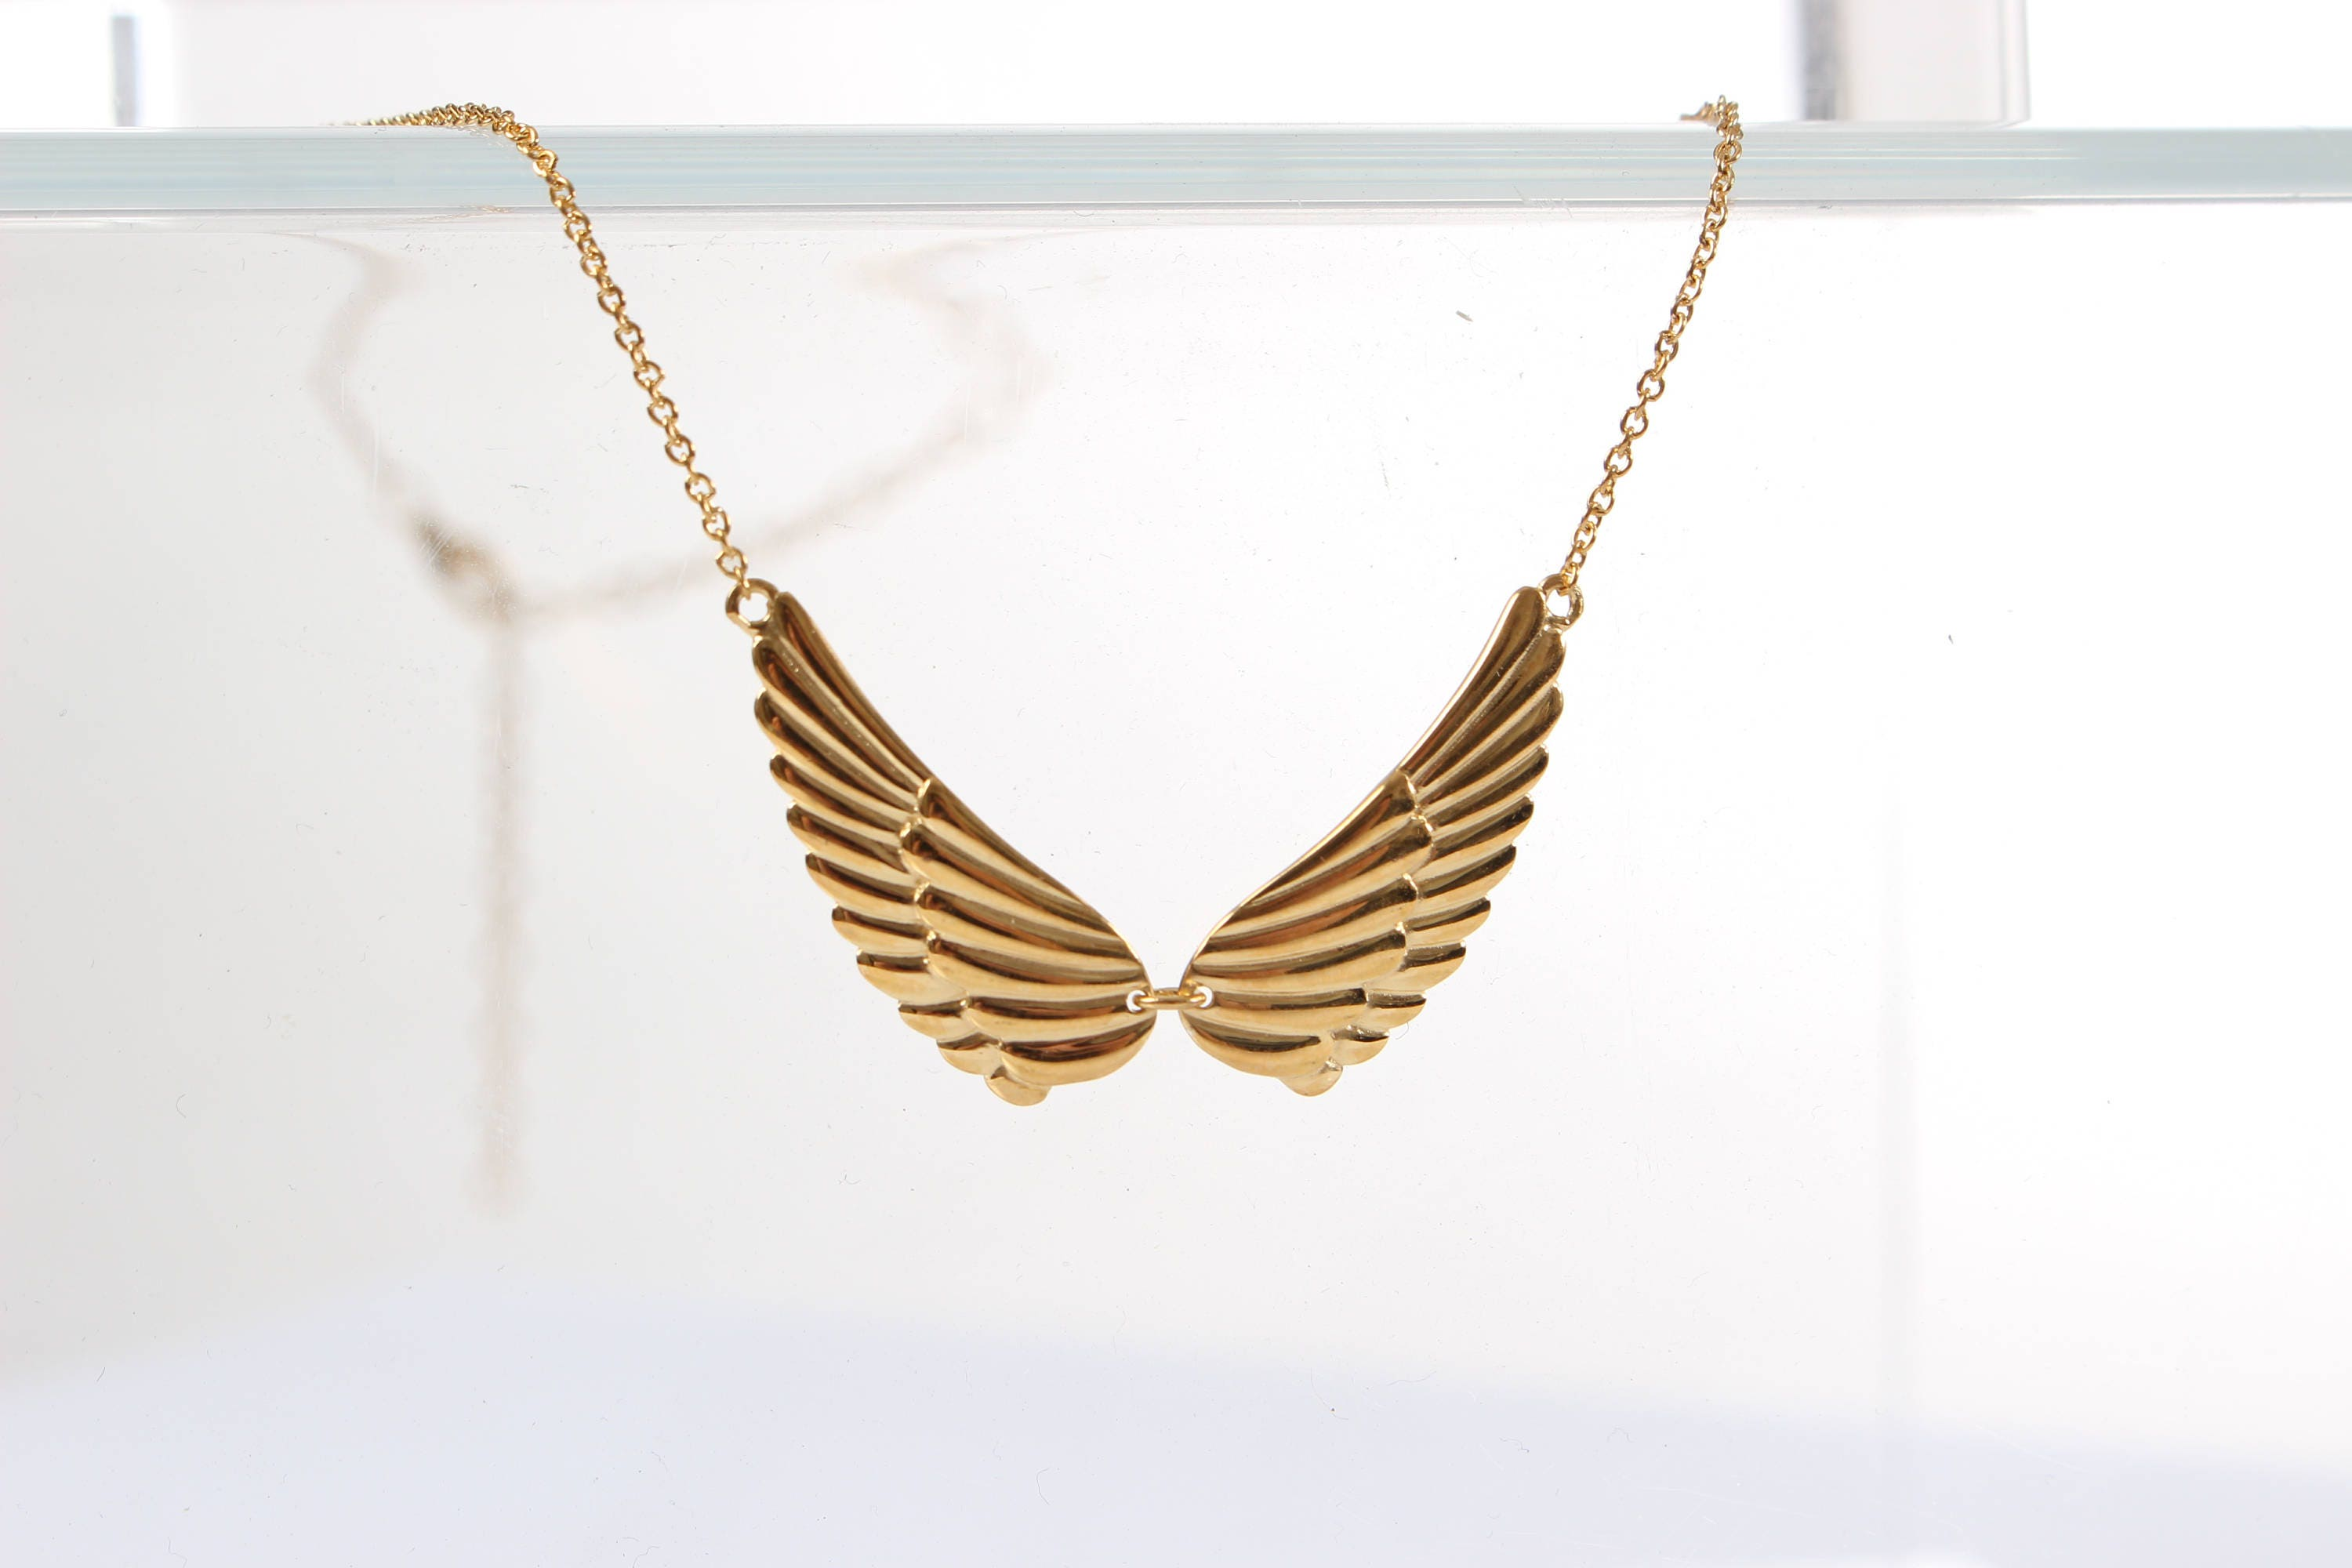 9ct Gold coated elegant two angel wings design pendant Sterling silver necklace